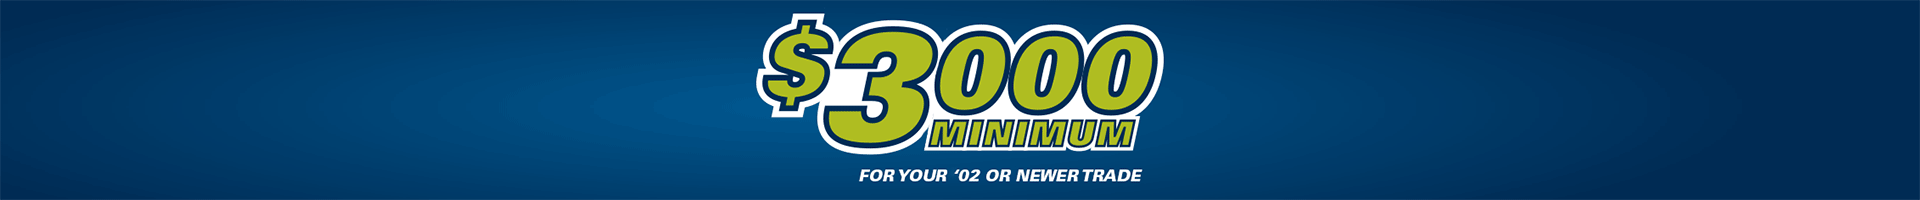 3000 Minimum for your 2002 or newer trade